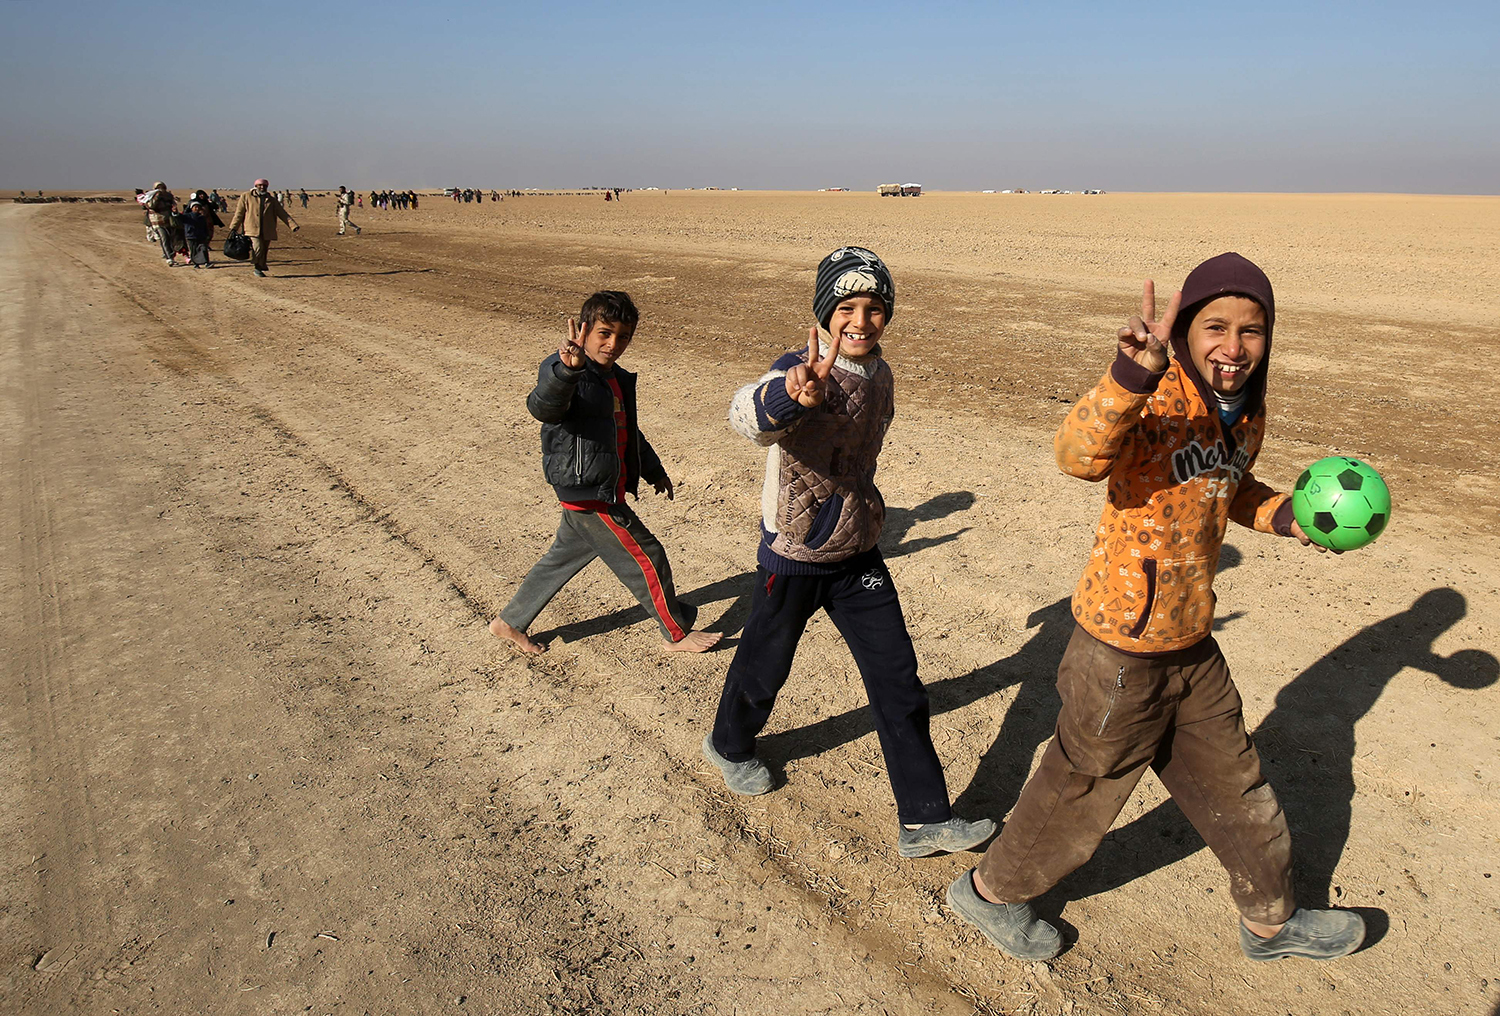 TOPSHOT - Iraqi boys, who fled their homes in the Iraqi town Shwah west of Mosul due to the fighting between government forces' and Islamic State (IS) group's jihadists, gesture as they are being escorted, from their makeshift camp to safer areas by Shiite fighters from the Hashed al-Shaabi (Popular Mobilisation) paramilitary forces, on December 11, 2016. According to the United Nations, about 90,000 people have fled their homes since the start of their offensive to retake the city of Mosul. / AFP PHOTO / AHMAD AL-RUBAYE / TT / kod 444